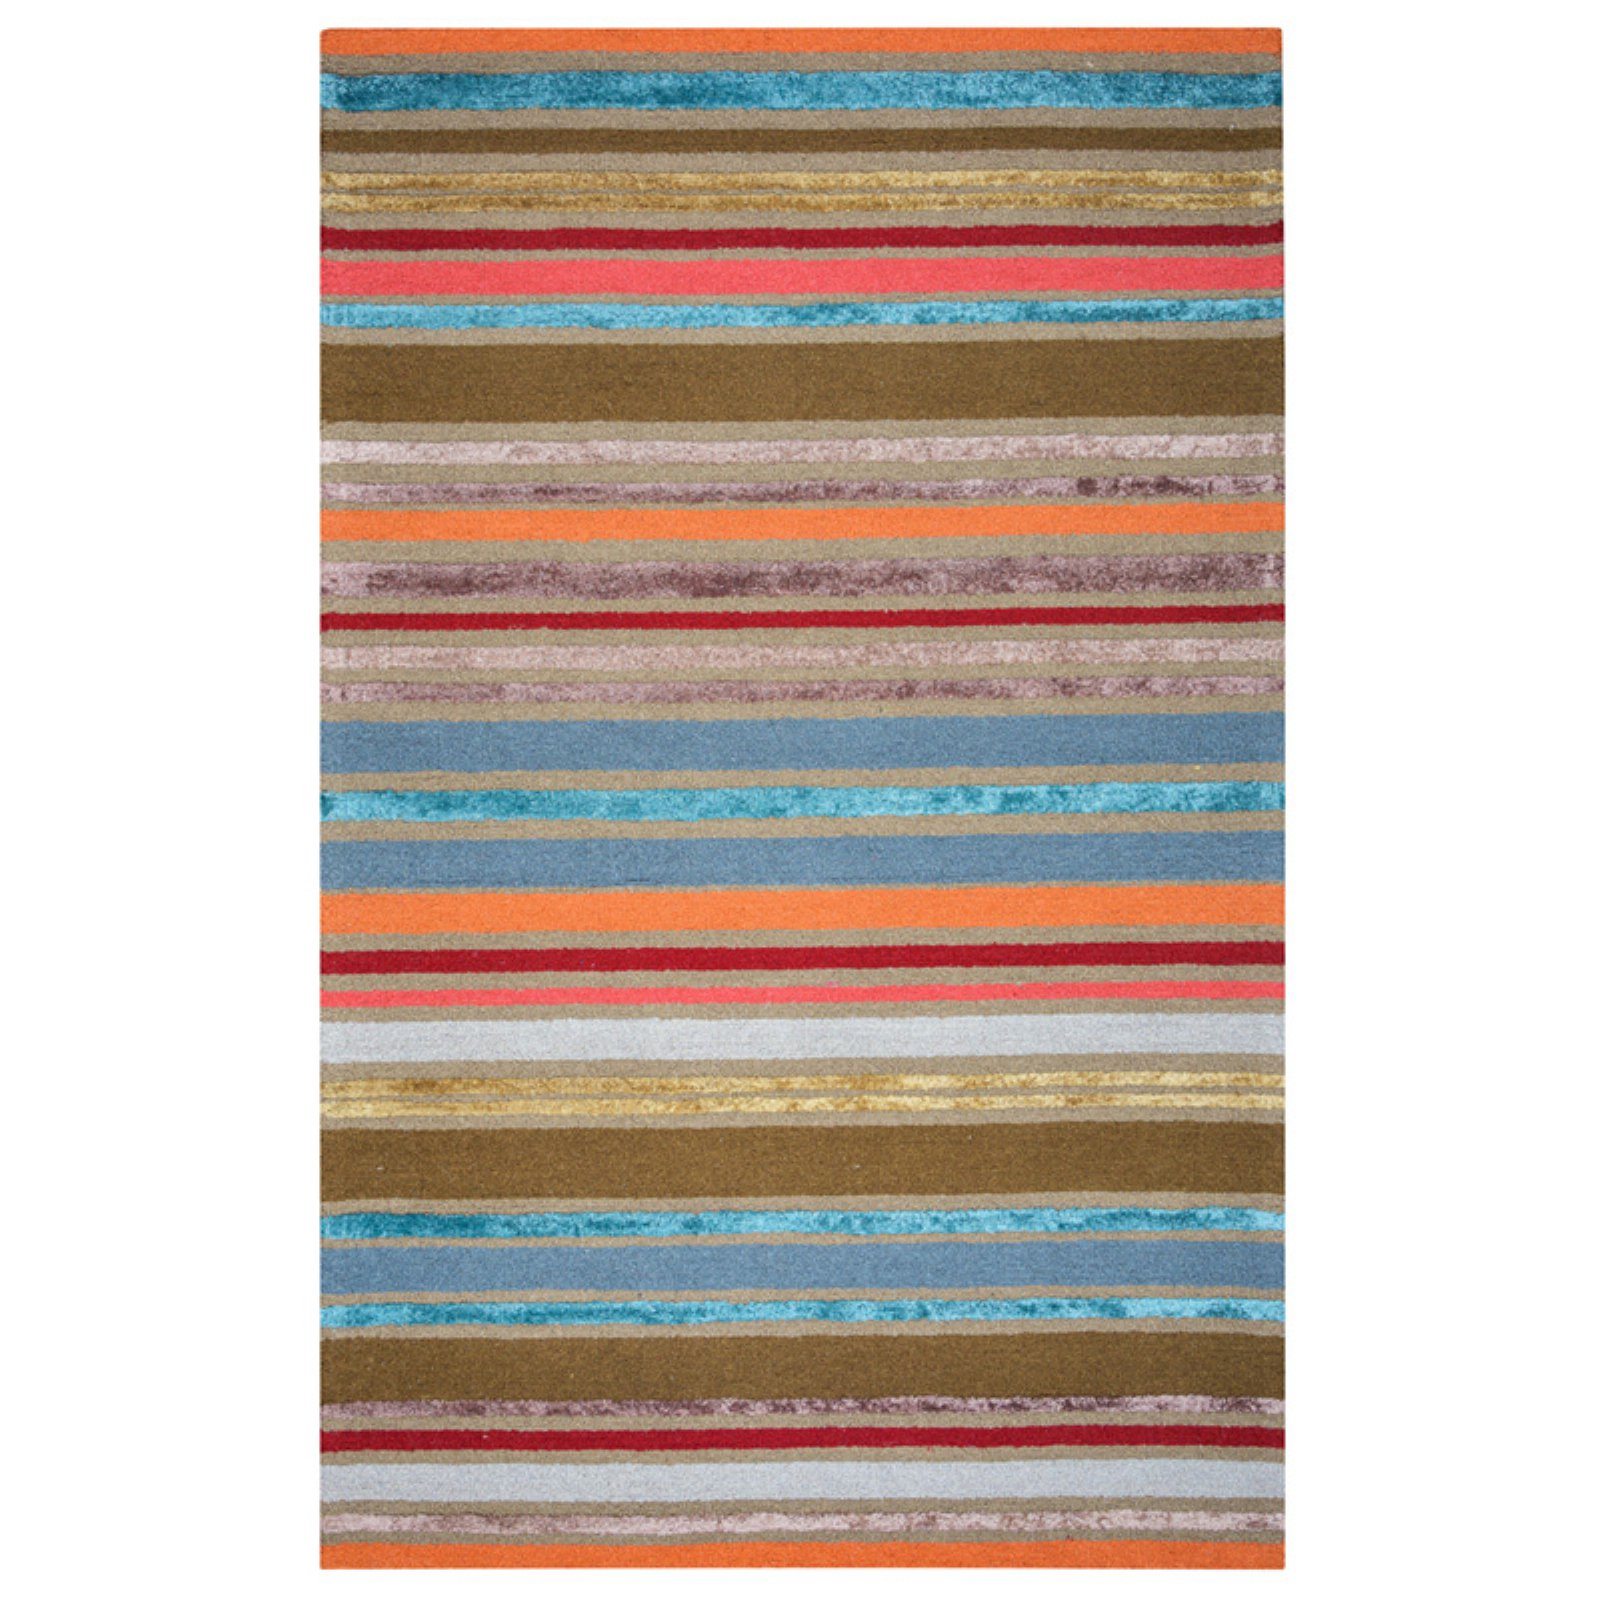 Rizzy Home Multi Colored Rug In Wool And Viscose 8'x10'